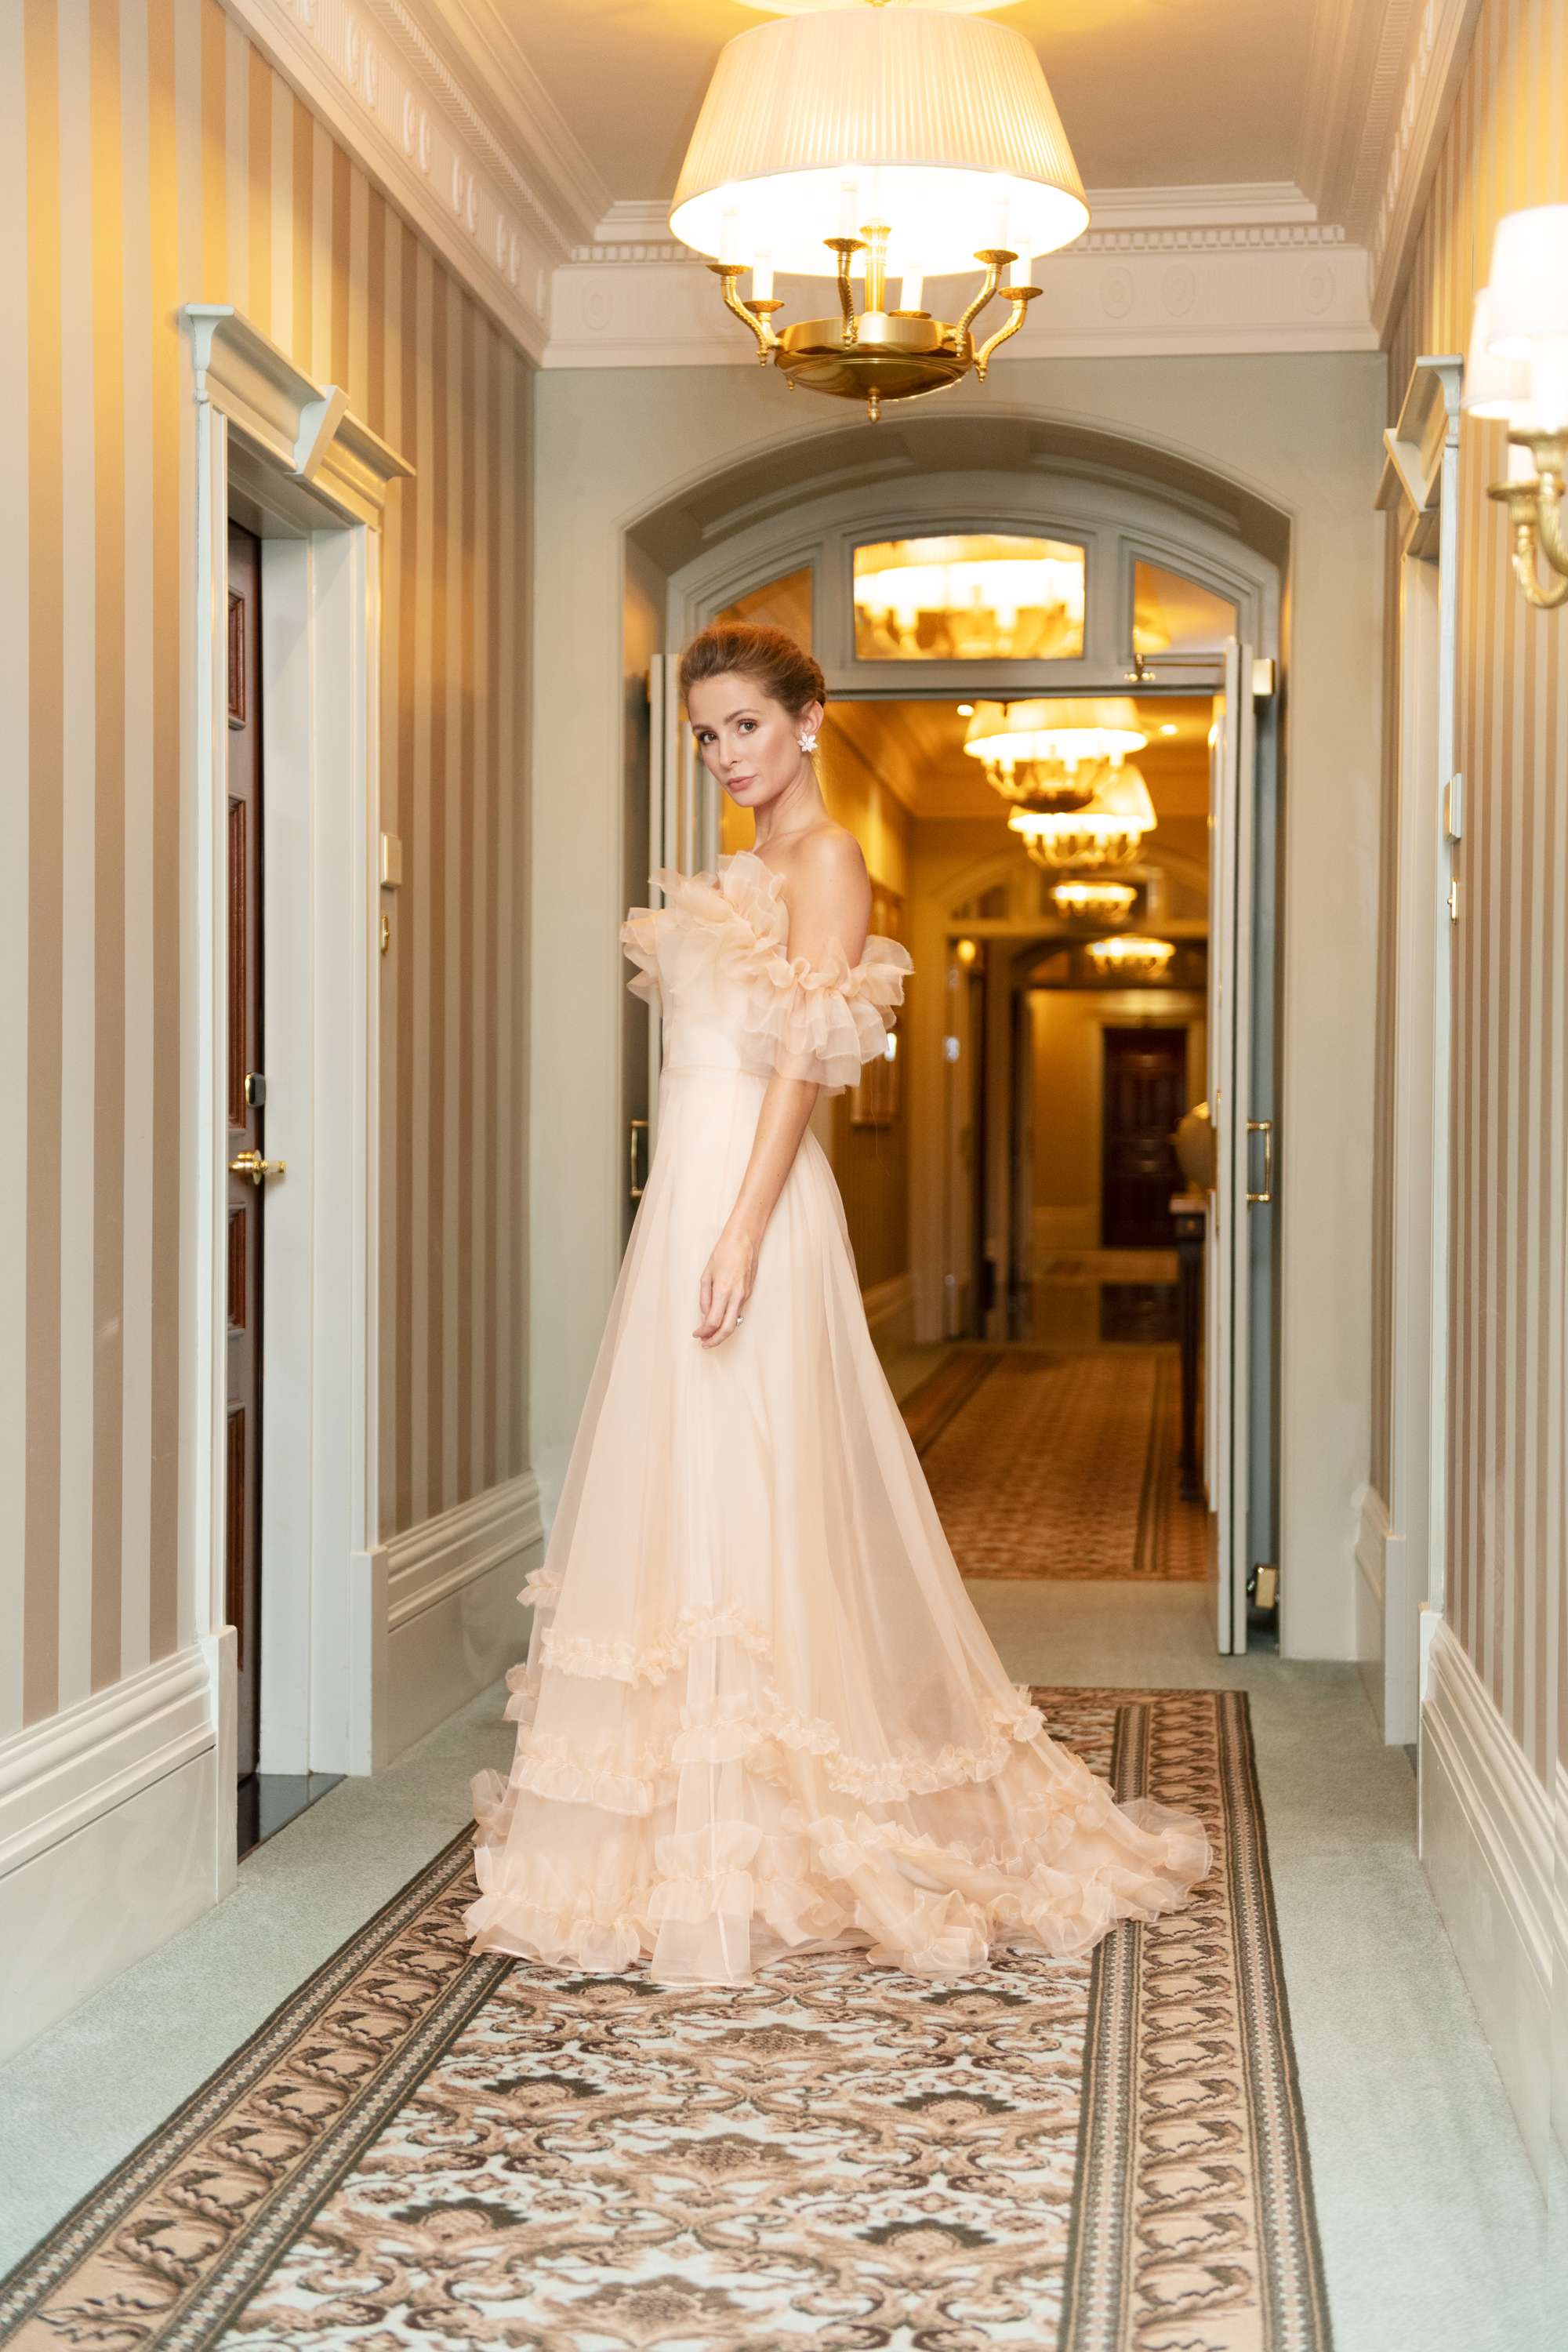 Millie Mackintosh BAFTA gown by Halfpenny London | Image by Oda Bakkeli Eide